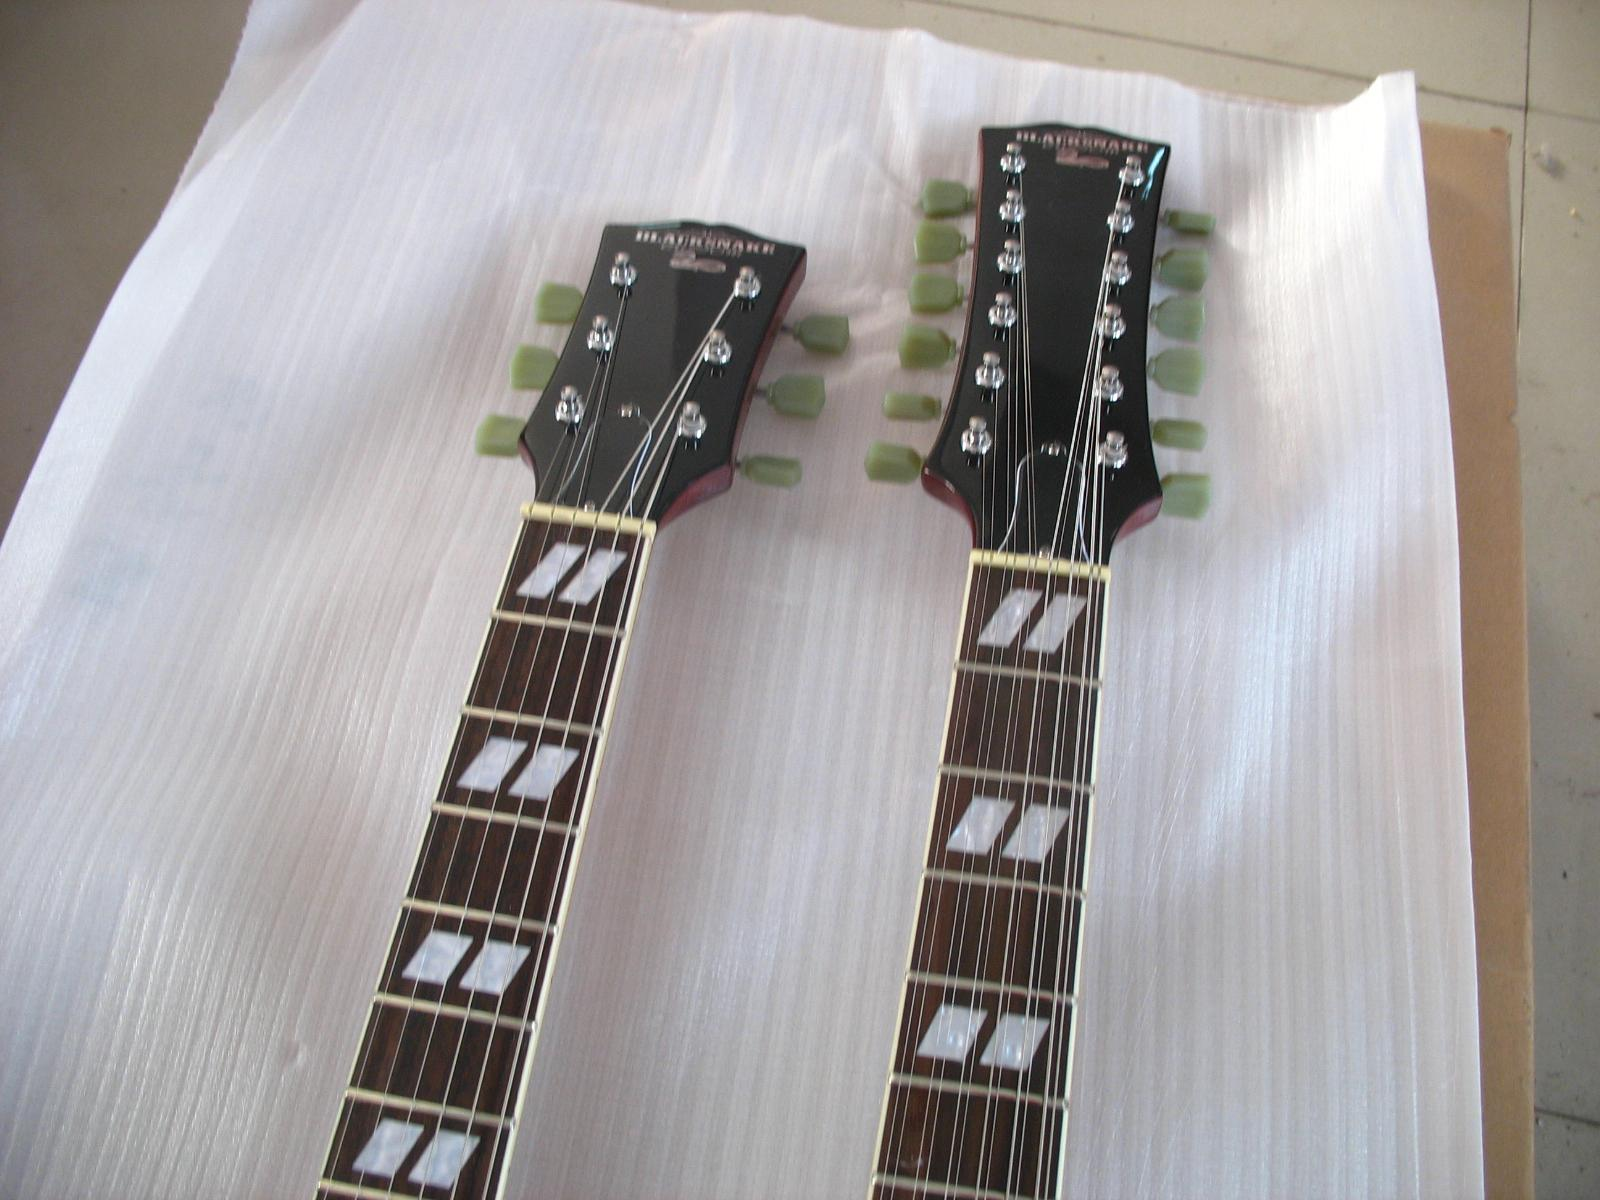 2020 Jingying Music Double Neck Style Electric Guitar and Bass Guitar 8